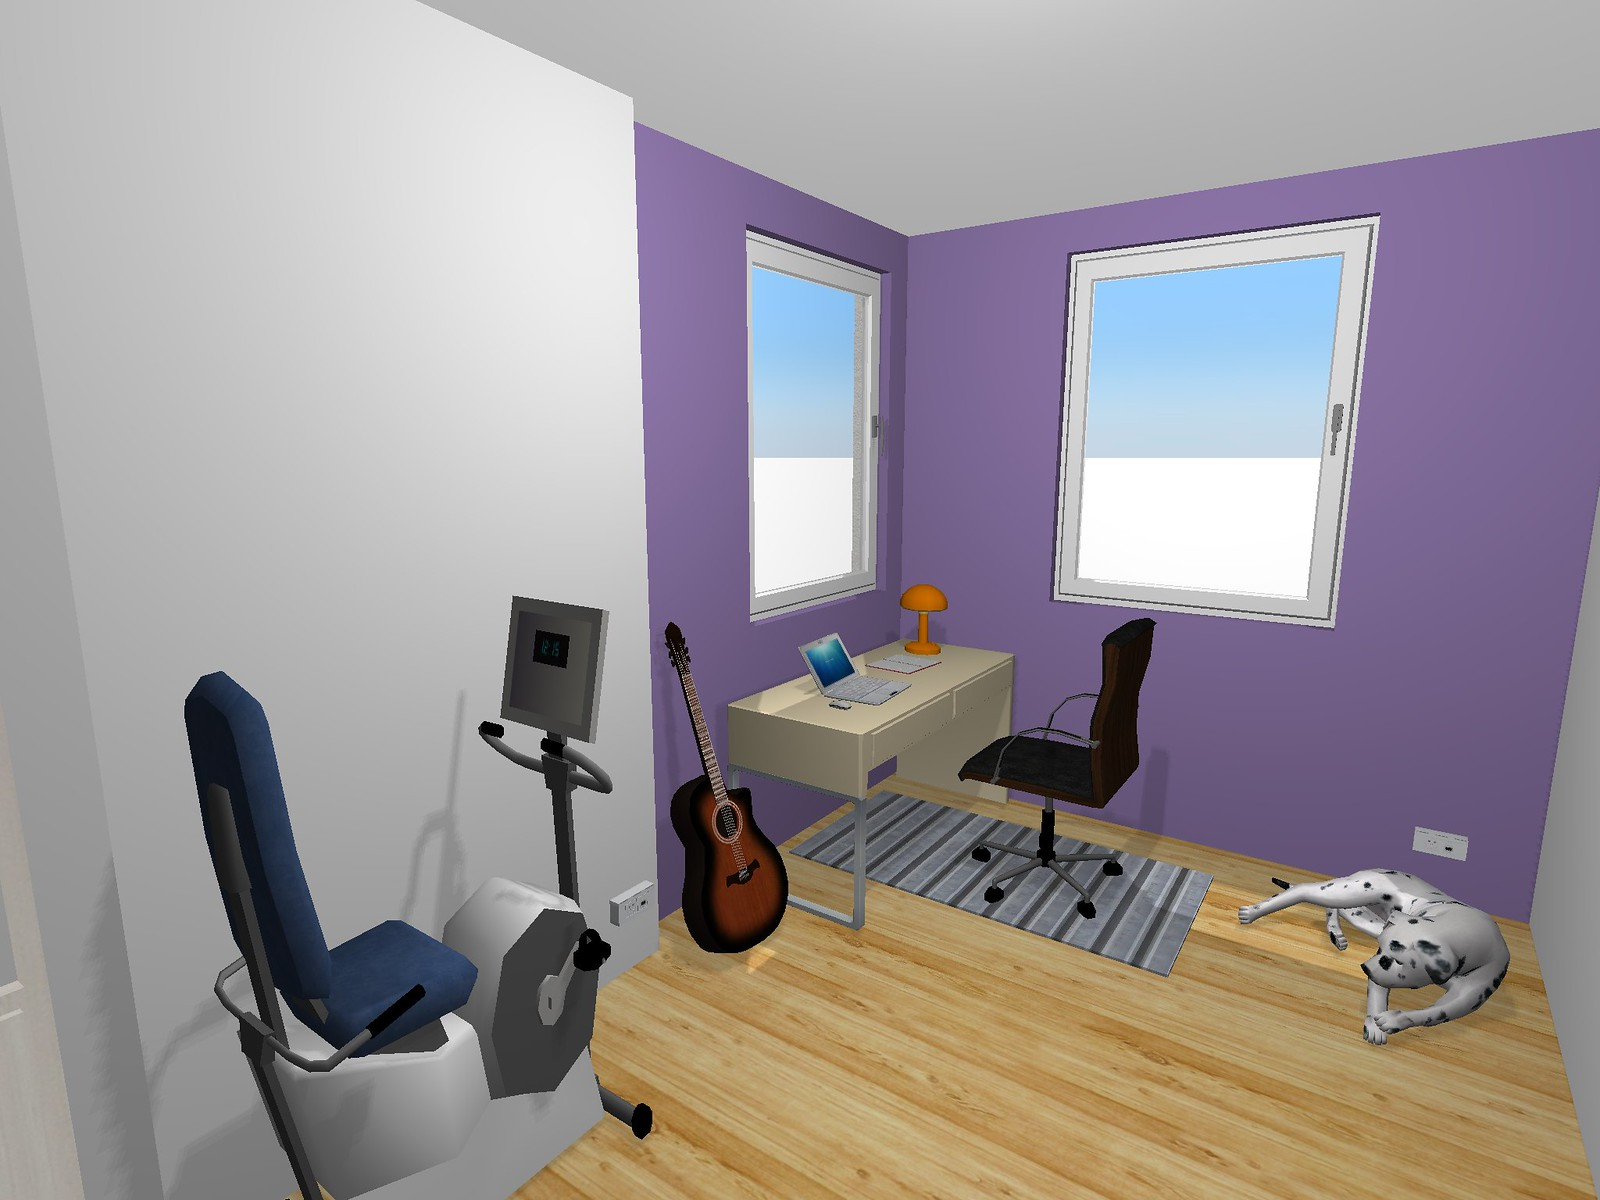 A concept render of how the new office should look, made with Home Design 3D on the iPad. It shows a much more spartan room, with a small, rectangular desk pushed up to the window on the far left corner, an office chair, guitar on a stand beside the desk, exercise bike nearby, and a dog curled up behind the work area.